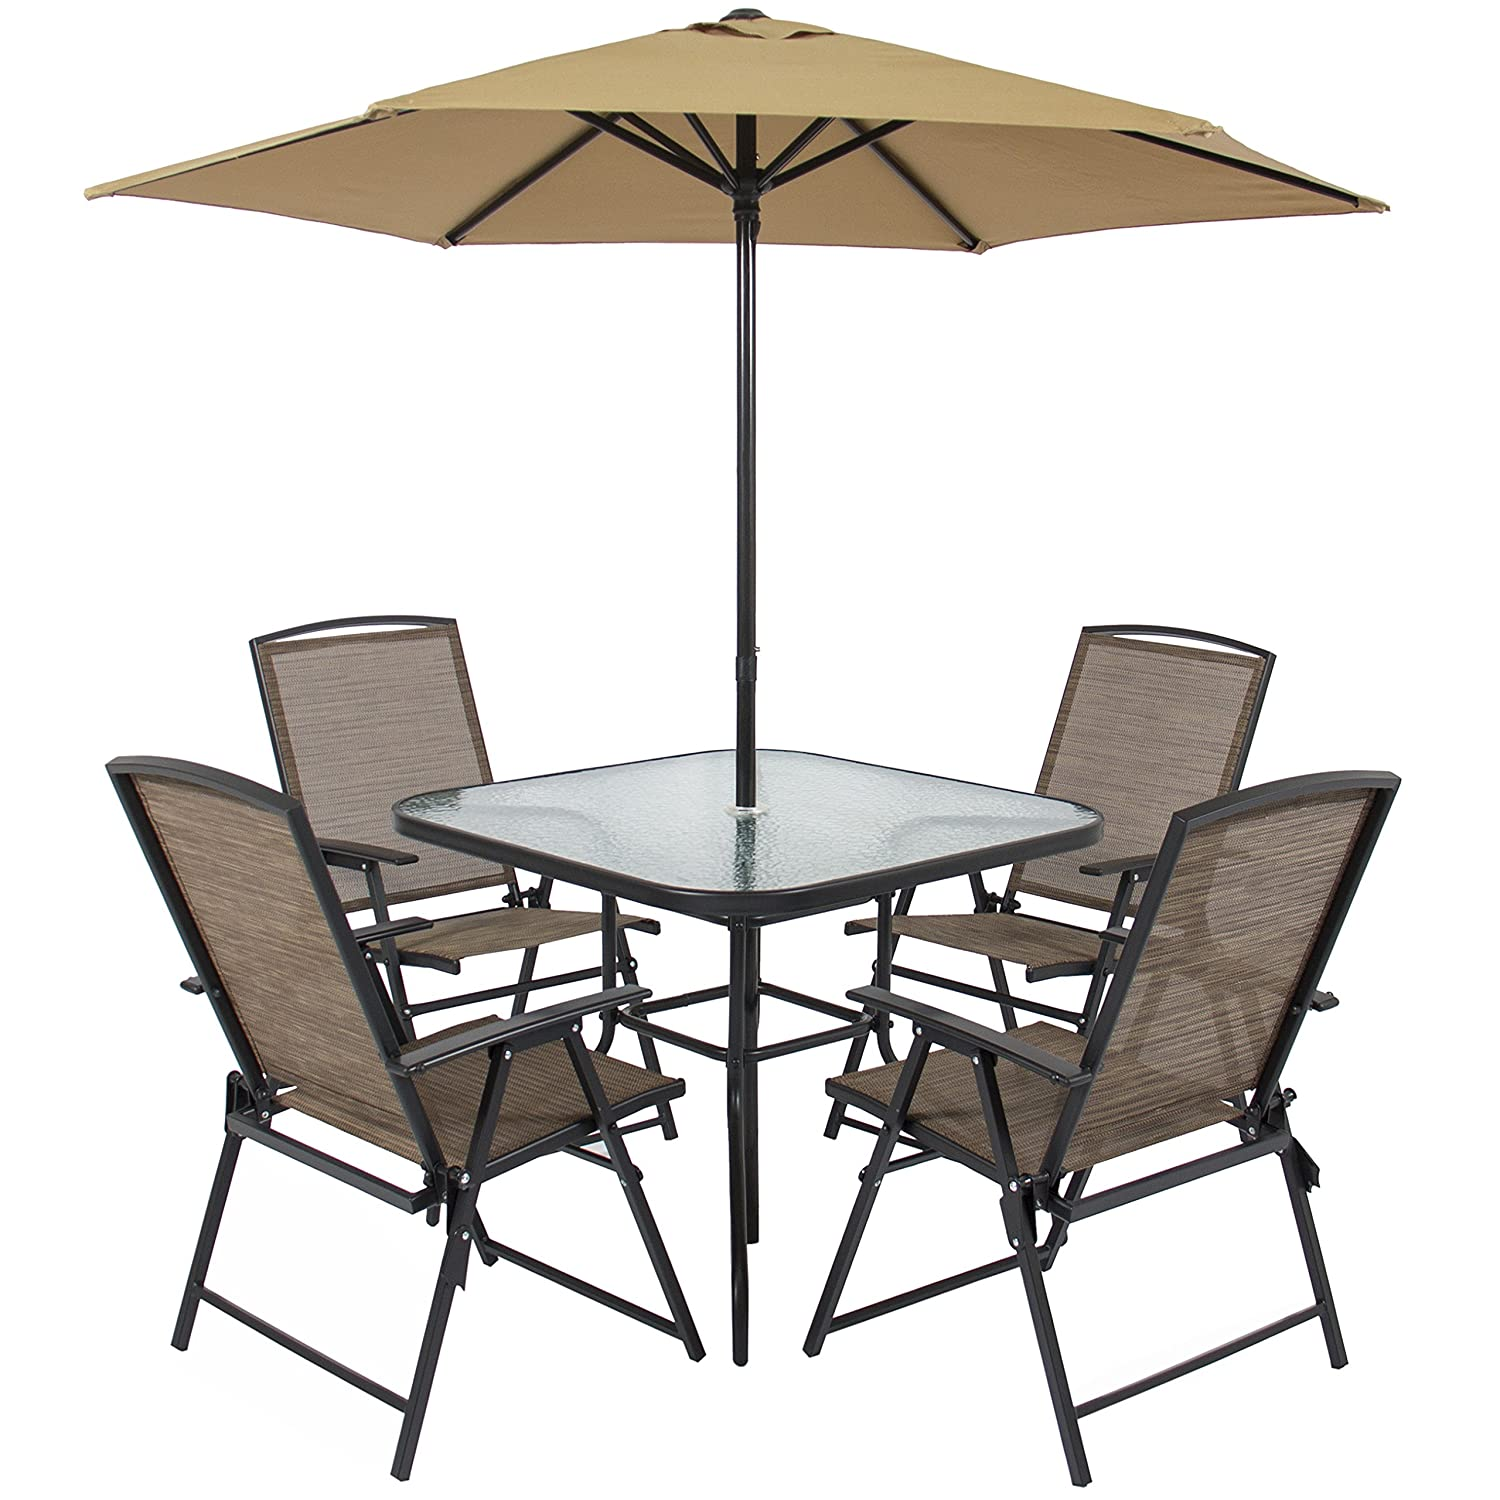 chairs co folding outdoor gg set black bk square with patio round indoor steel back table